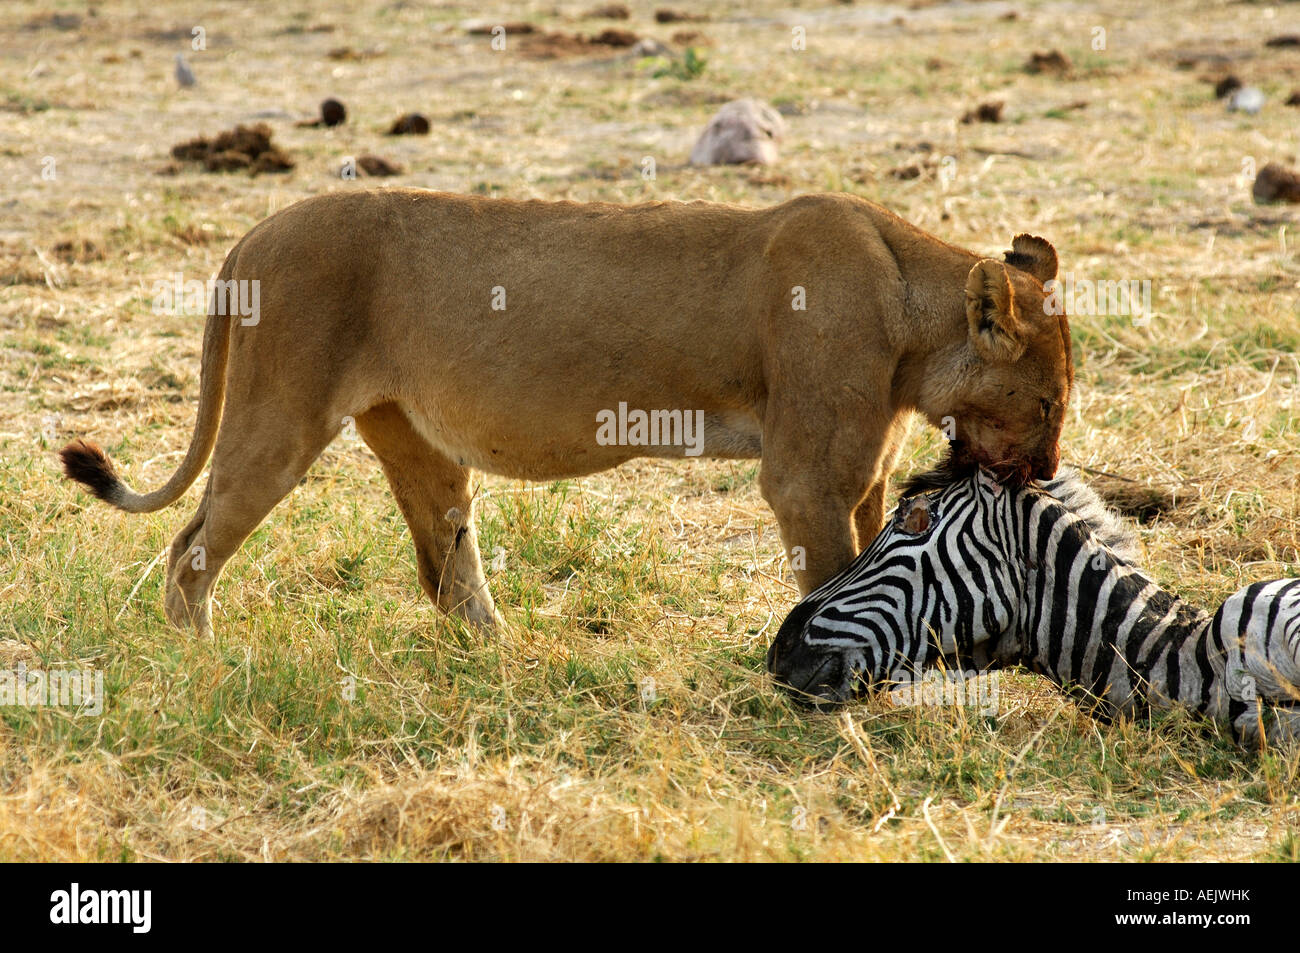 Lioness at a Zebra kill, Savuti Narional Park, Botswana Stock Photo